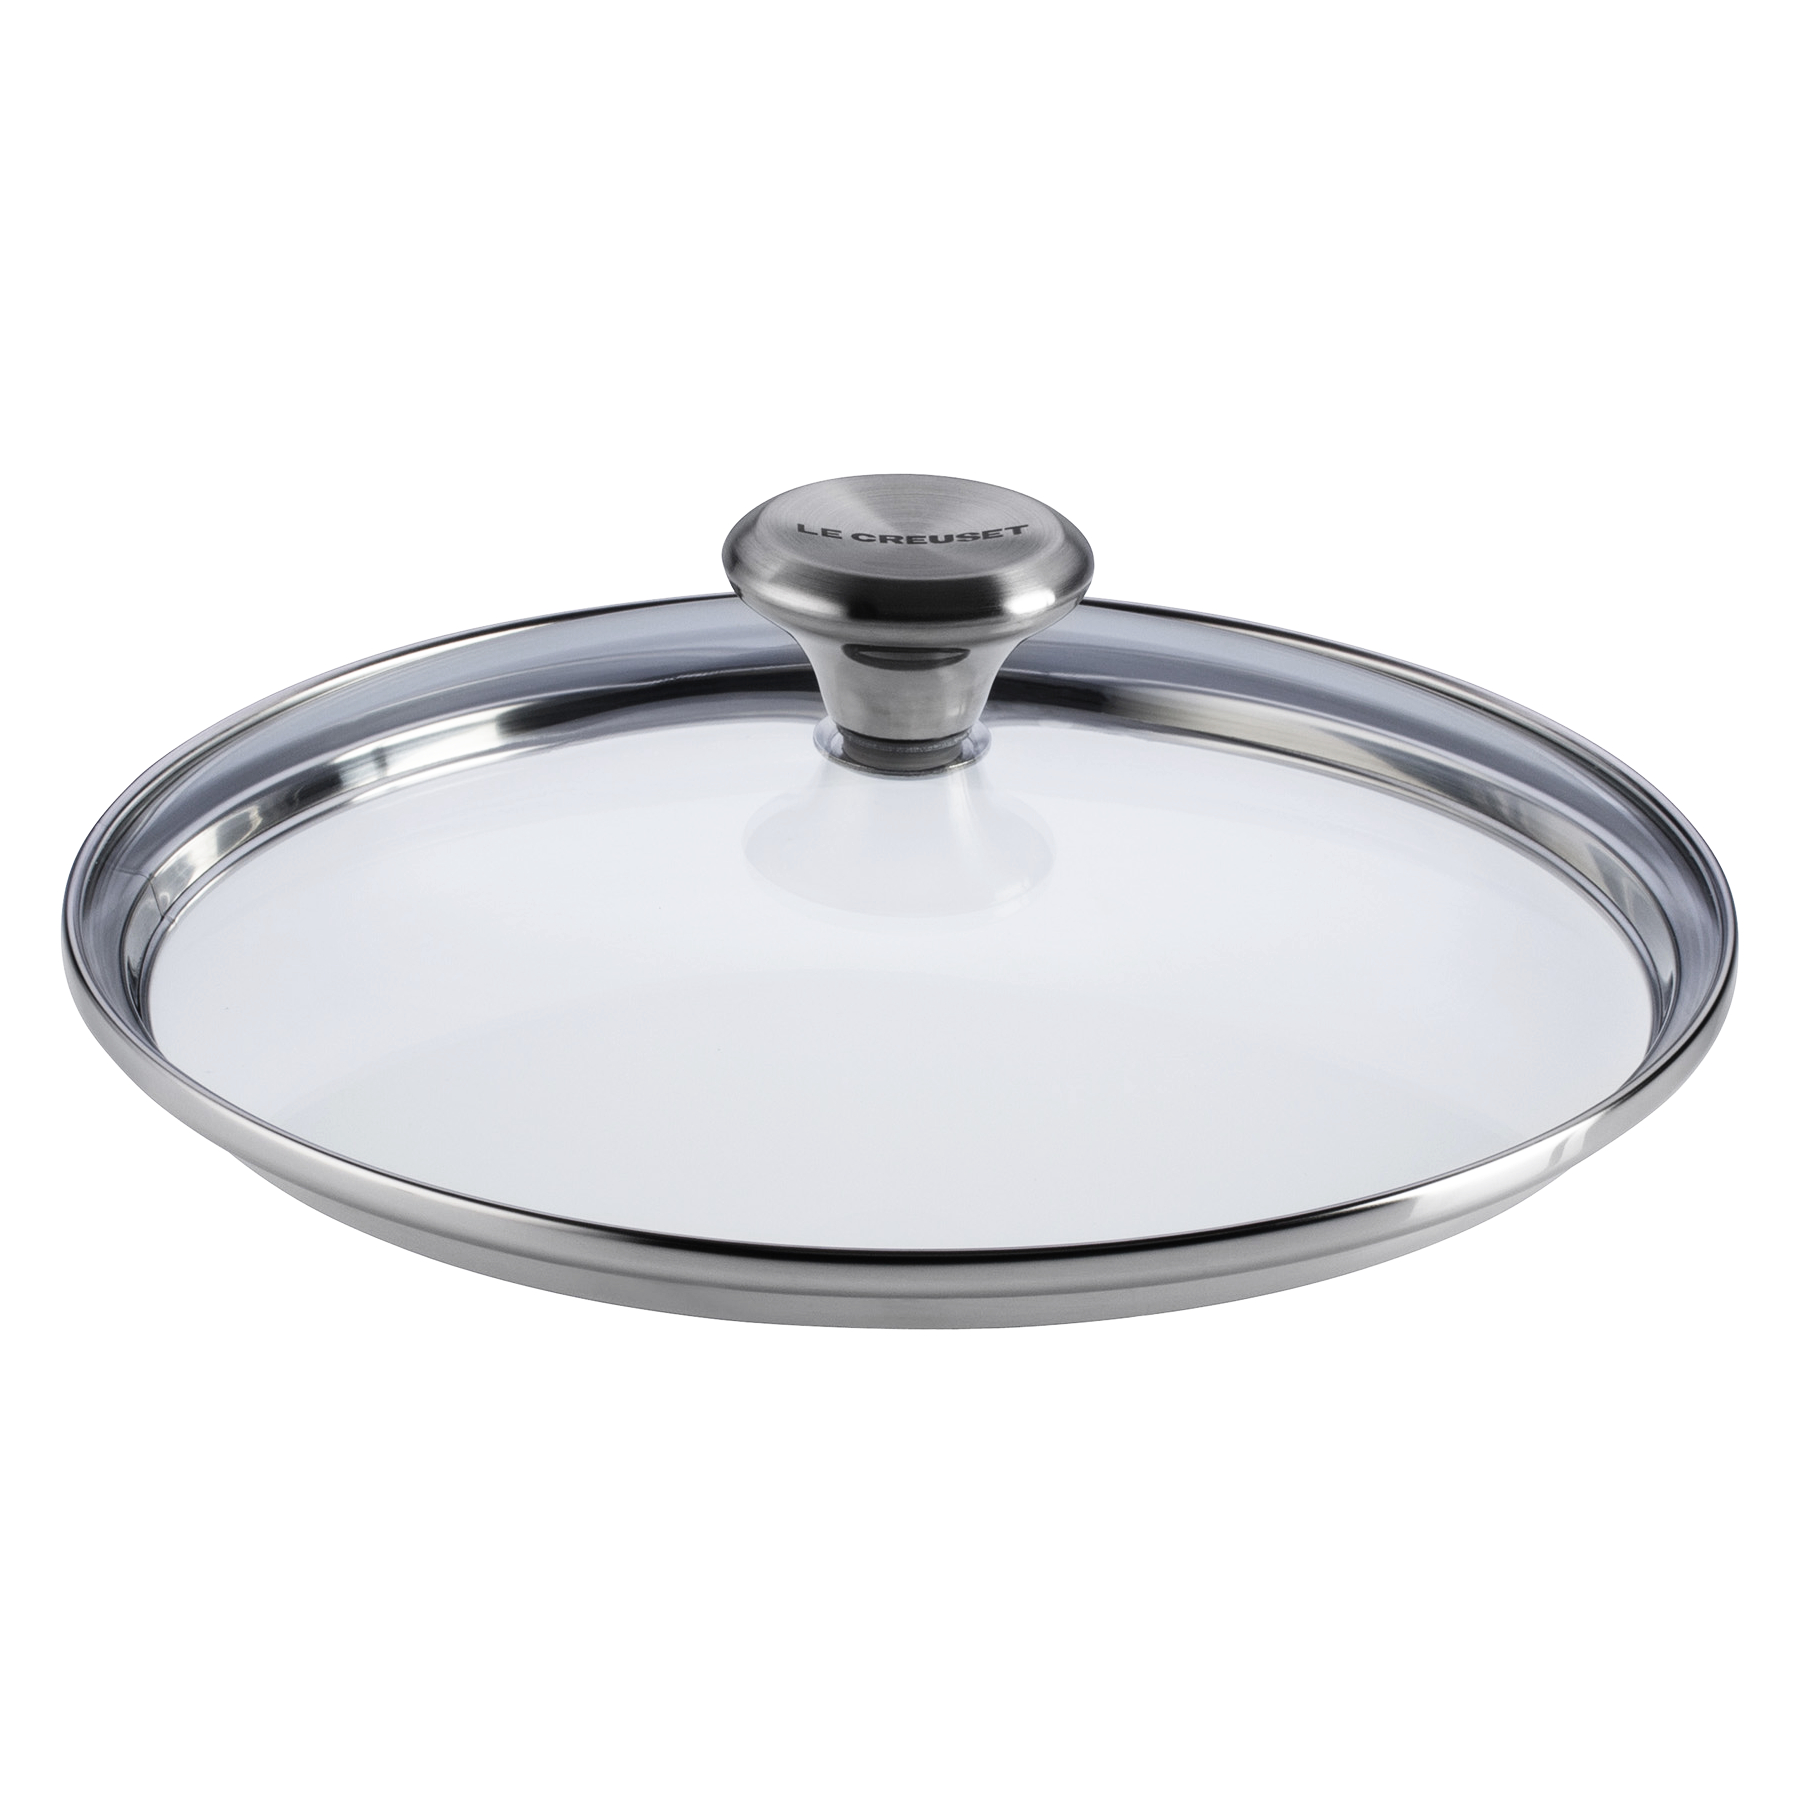 Le Creuset Signature 8 Inch Tempered Glass Lid with Stainless Steel Knob